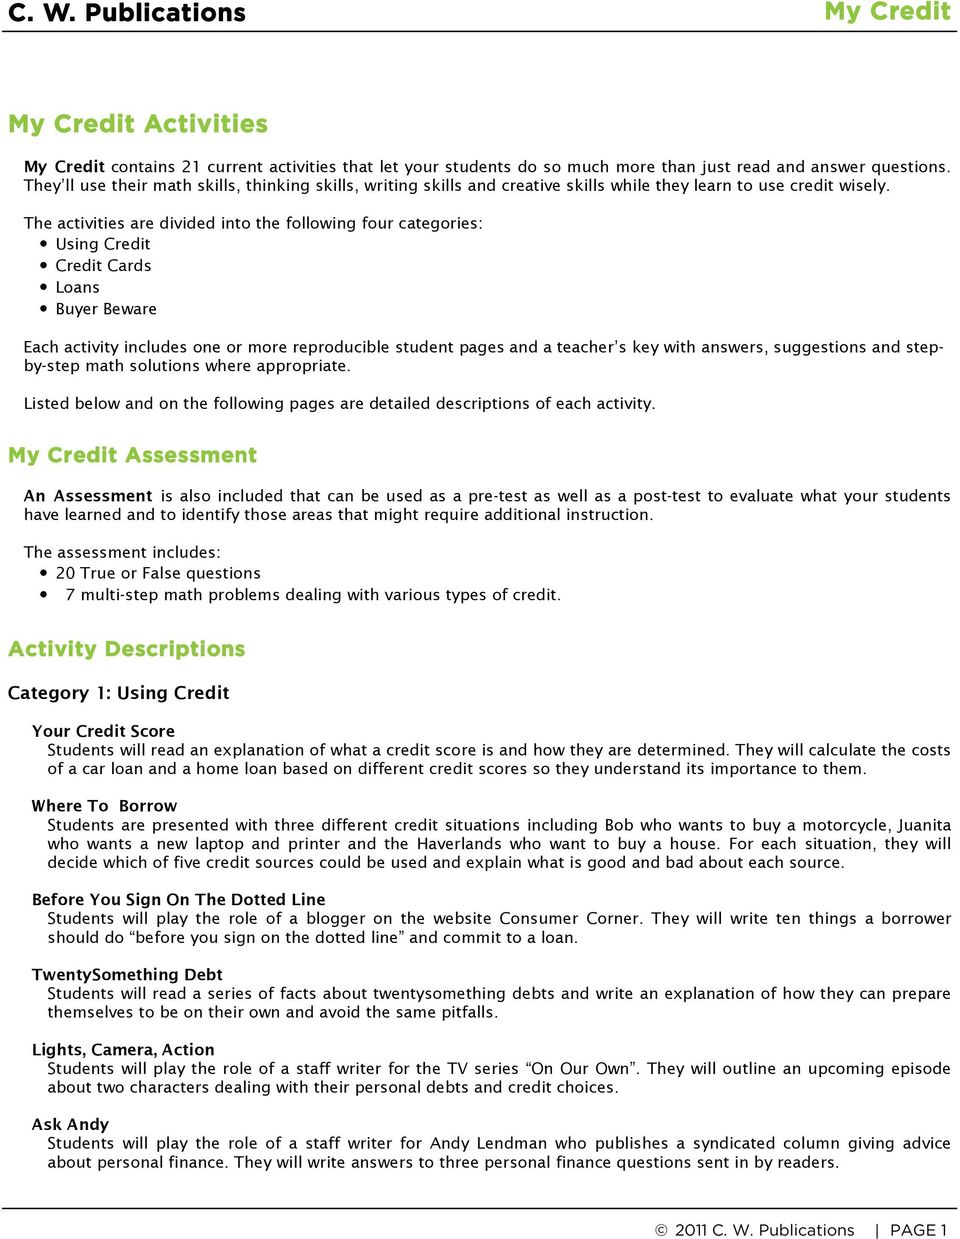 worksheet Reproducible Student Worksheet activity 2 things to do students will make a list of cary the activities are divided into following four categories using credit cards loans buyer